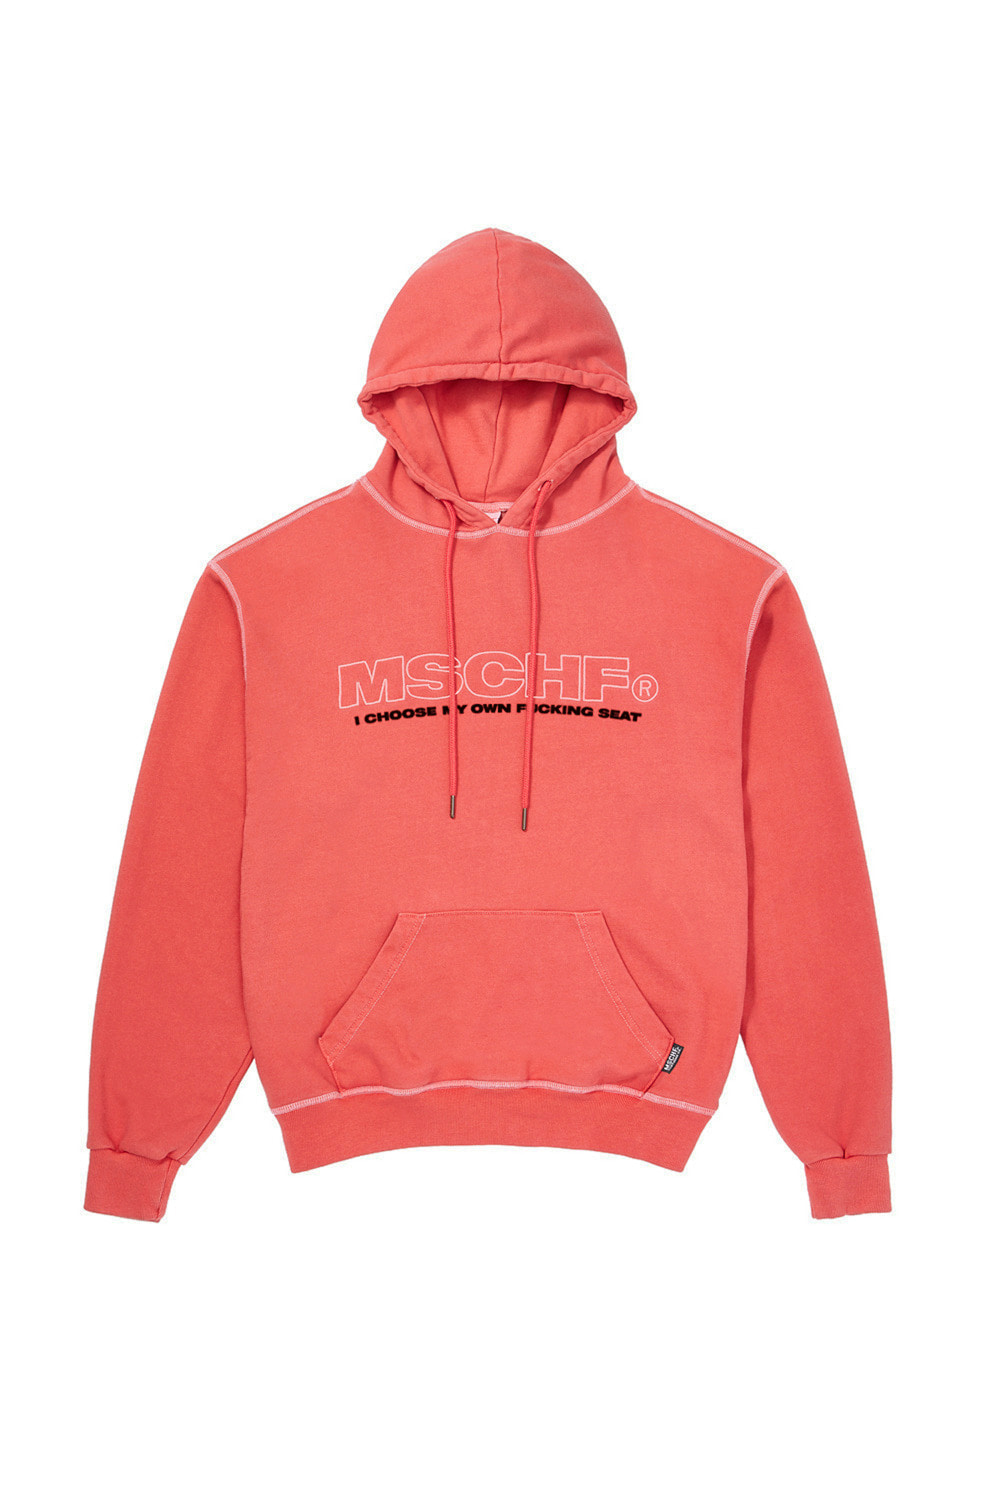 LIM KIM X MSCHF_WASHED HOODIE_red orange